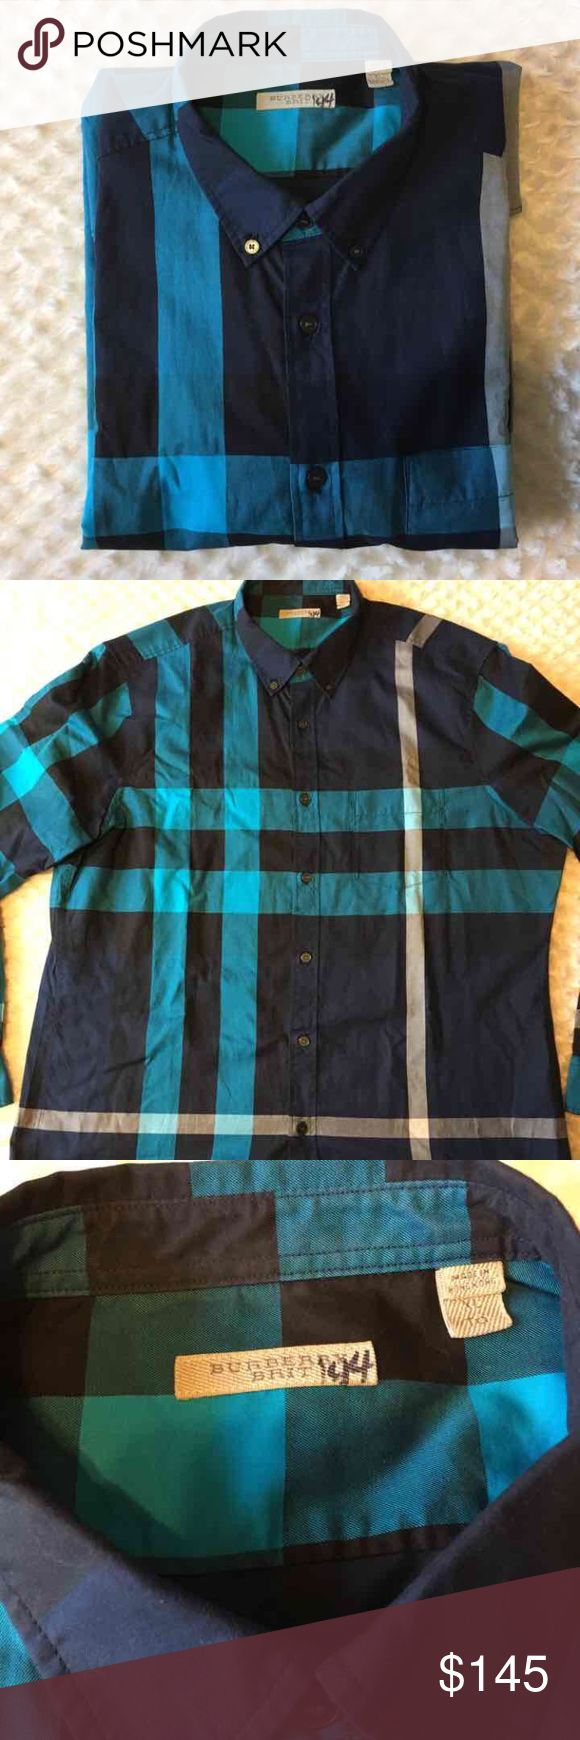 New authentic burberry shirt for men XL New without tags never worn authentic burberry shirt size xl blue color 100% cotton original price is 295$ Burberry Shirts Casual Button Down Shirts